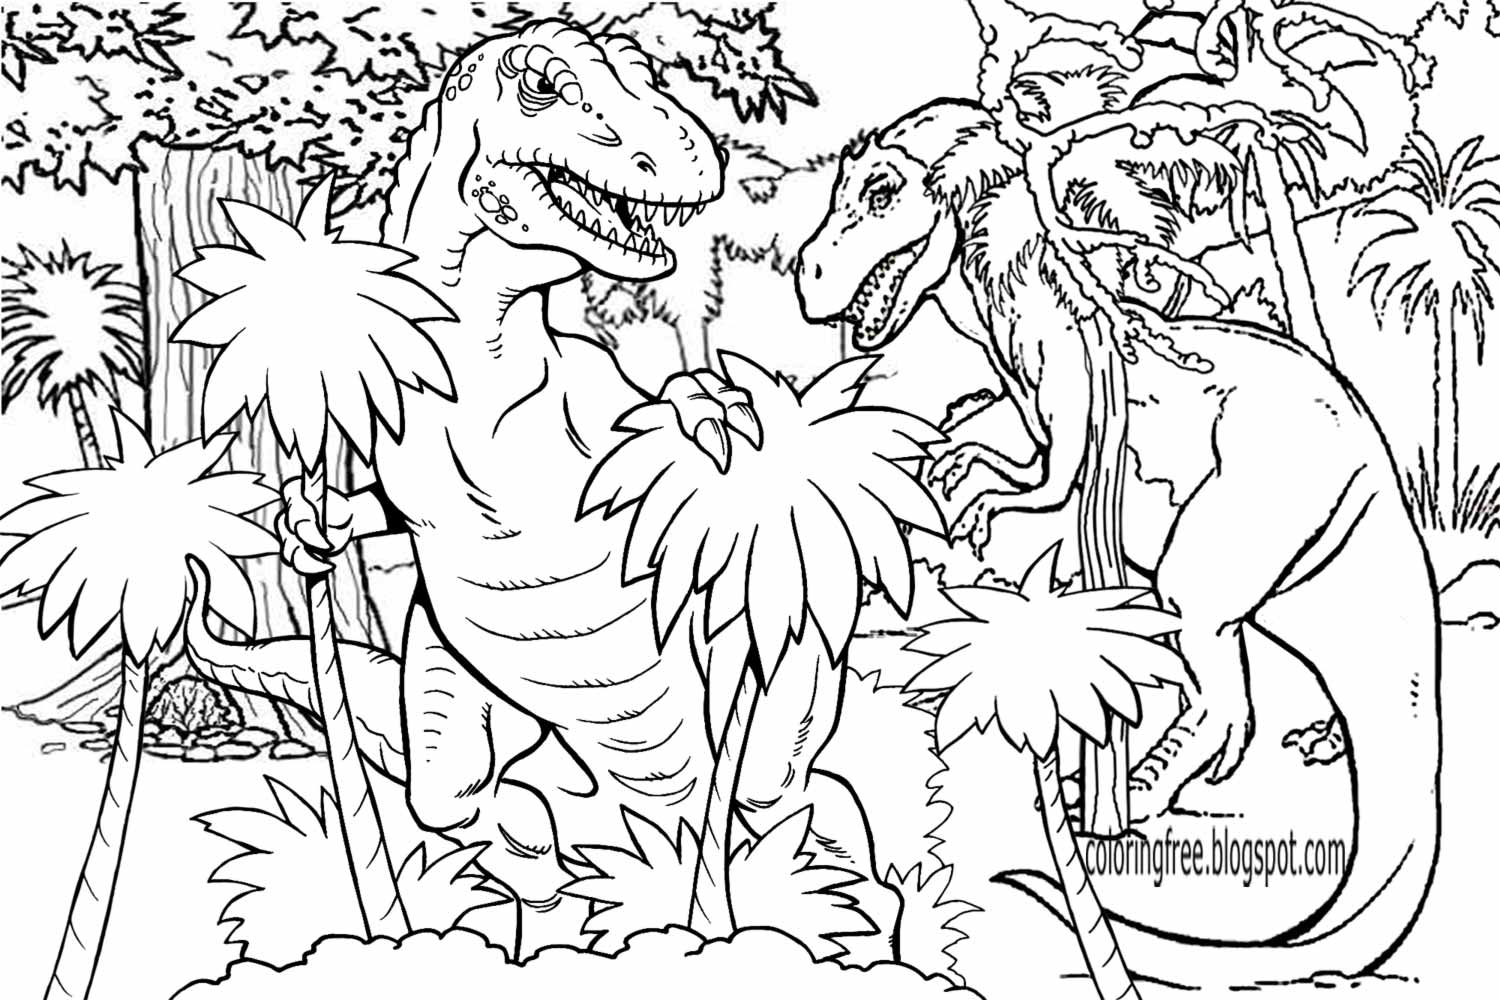 print dinosaur coloring pages printable dinosaur coloring pages for kids cool2bkids print coloring pages dinosaur 1 1